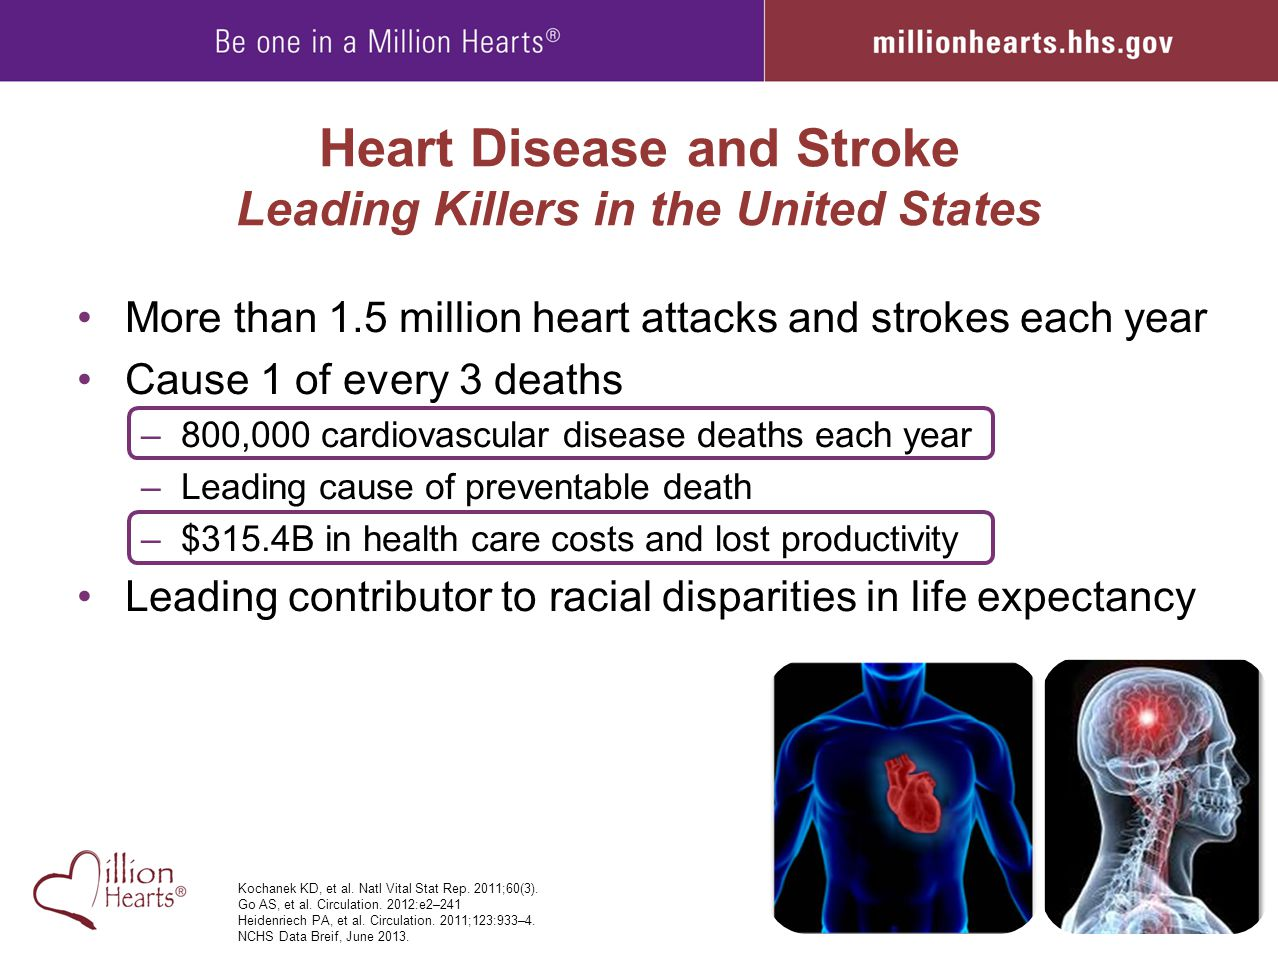 Heart Disease and Stroke Leading Killers in the United States